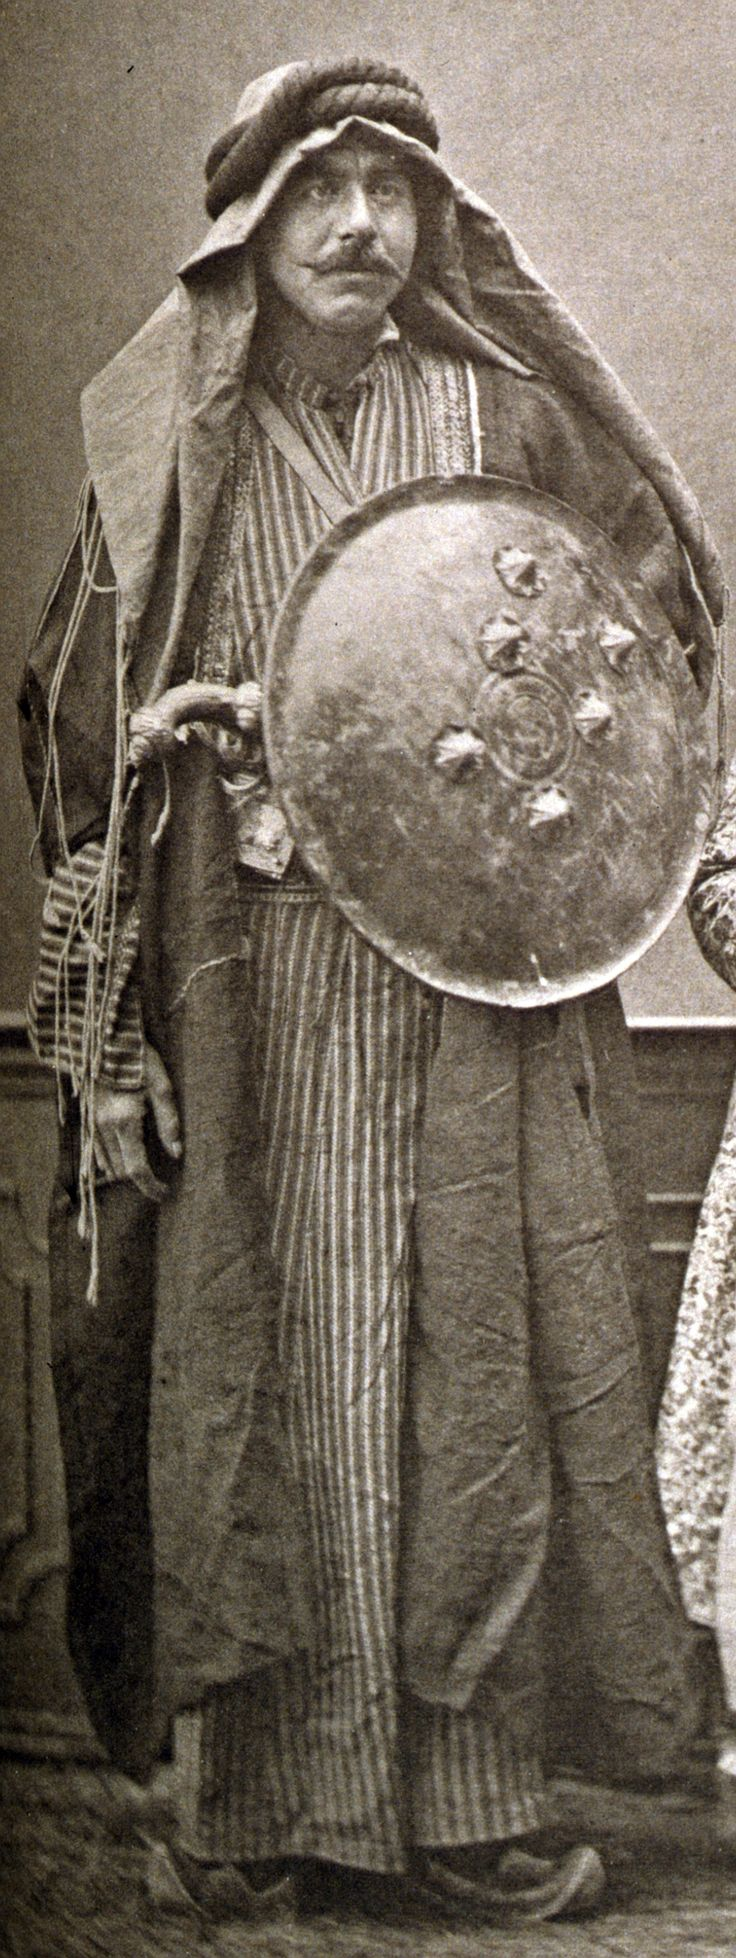 "Ottoman Arab of the Chammar (Shammar) tribe, he has a pistol (kuber) and a kalkan shield made from lacquerd hardened leather with six bosses. From:Les costumes populaires de la Turquie en 1873, 74 photographic plates by Pascal Sebah, published by the Imperial Ottoman Commission for the ""Exposition Universelle"" of Vienna in 1873."